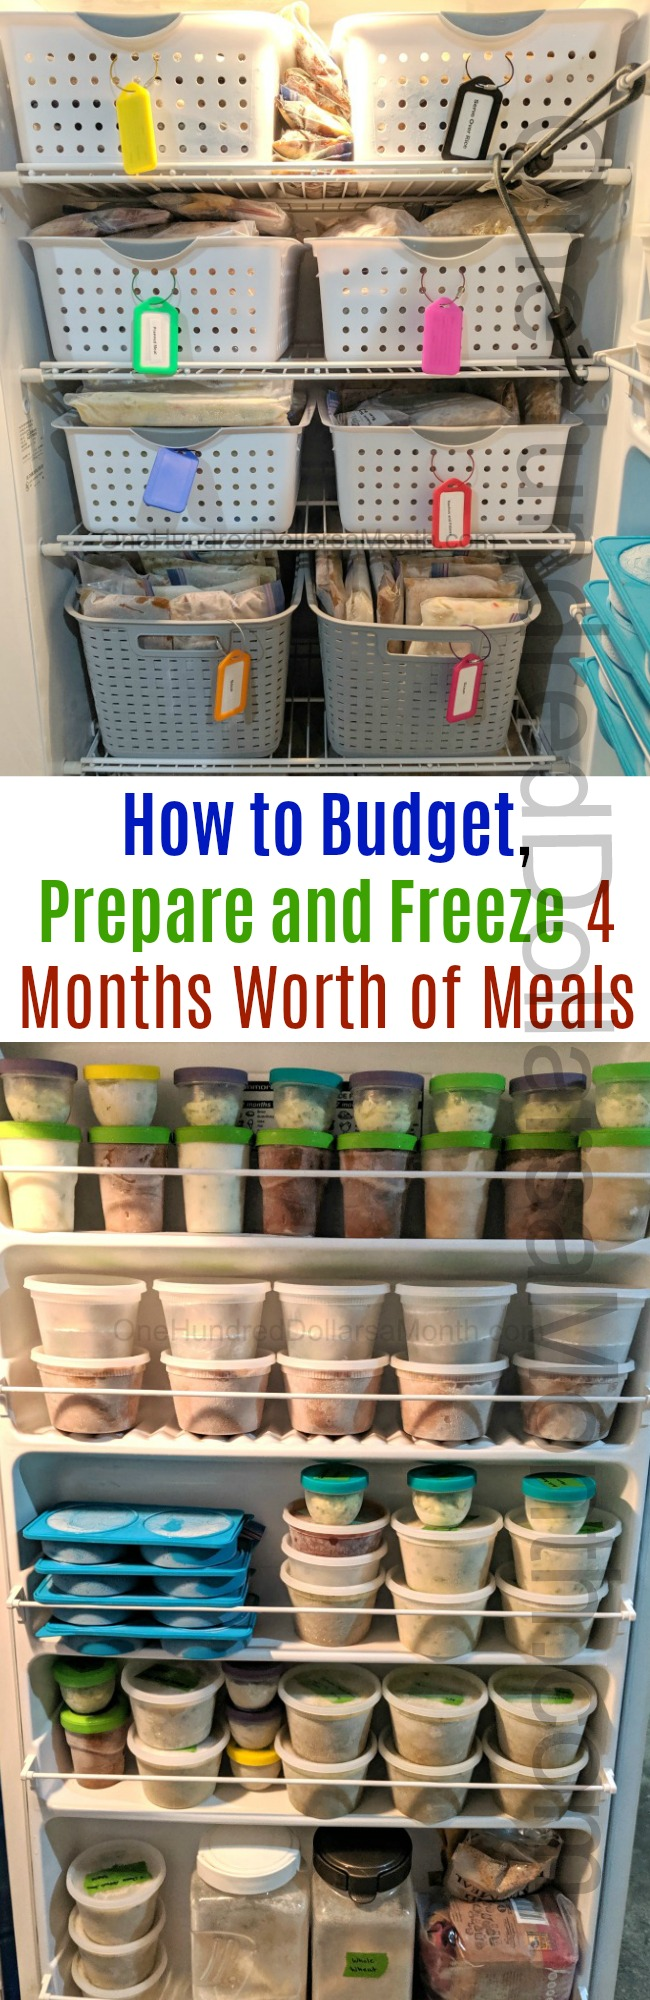 Freezer Meal Ideas ~ A Freezer Meal Menu Plan for Four Month's Worth of Meals